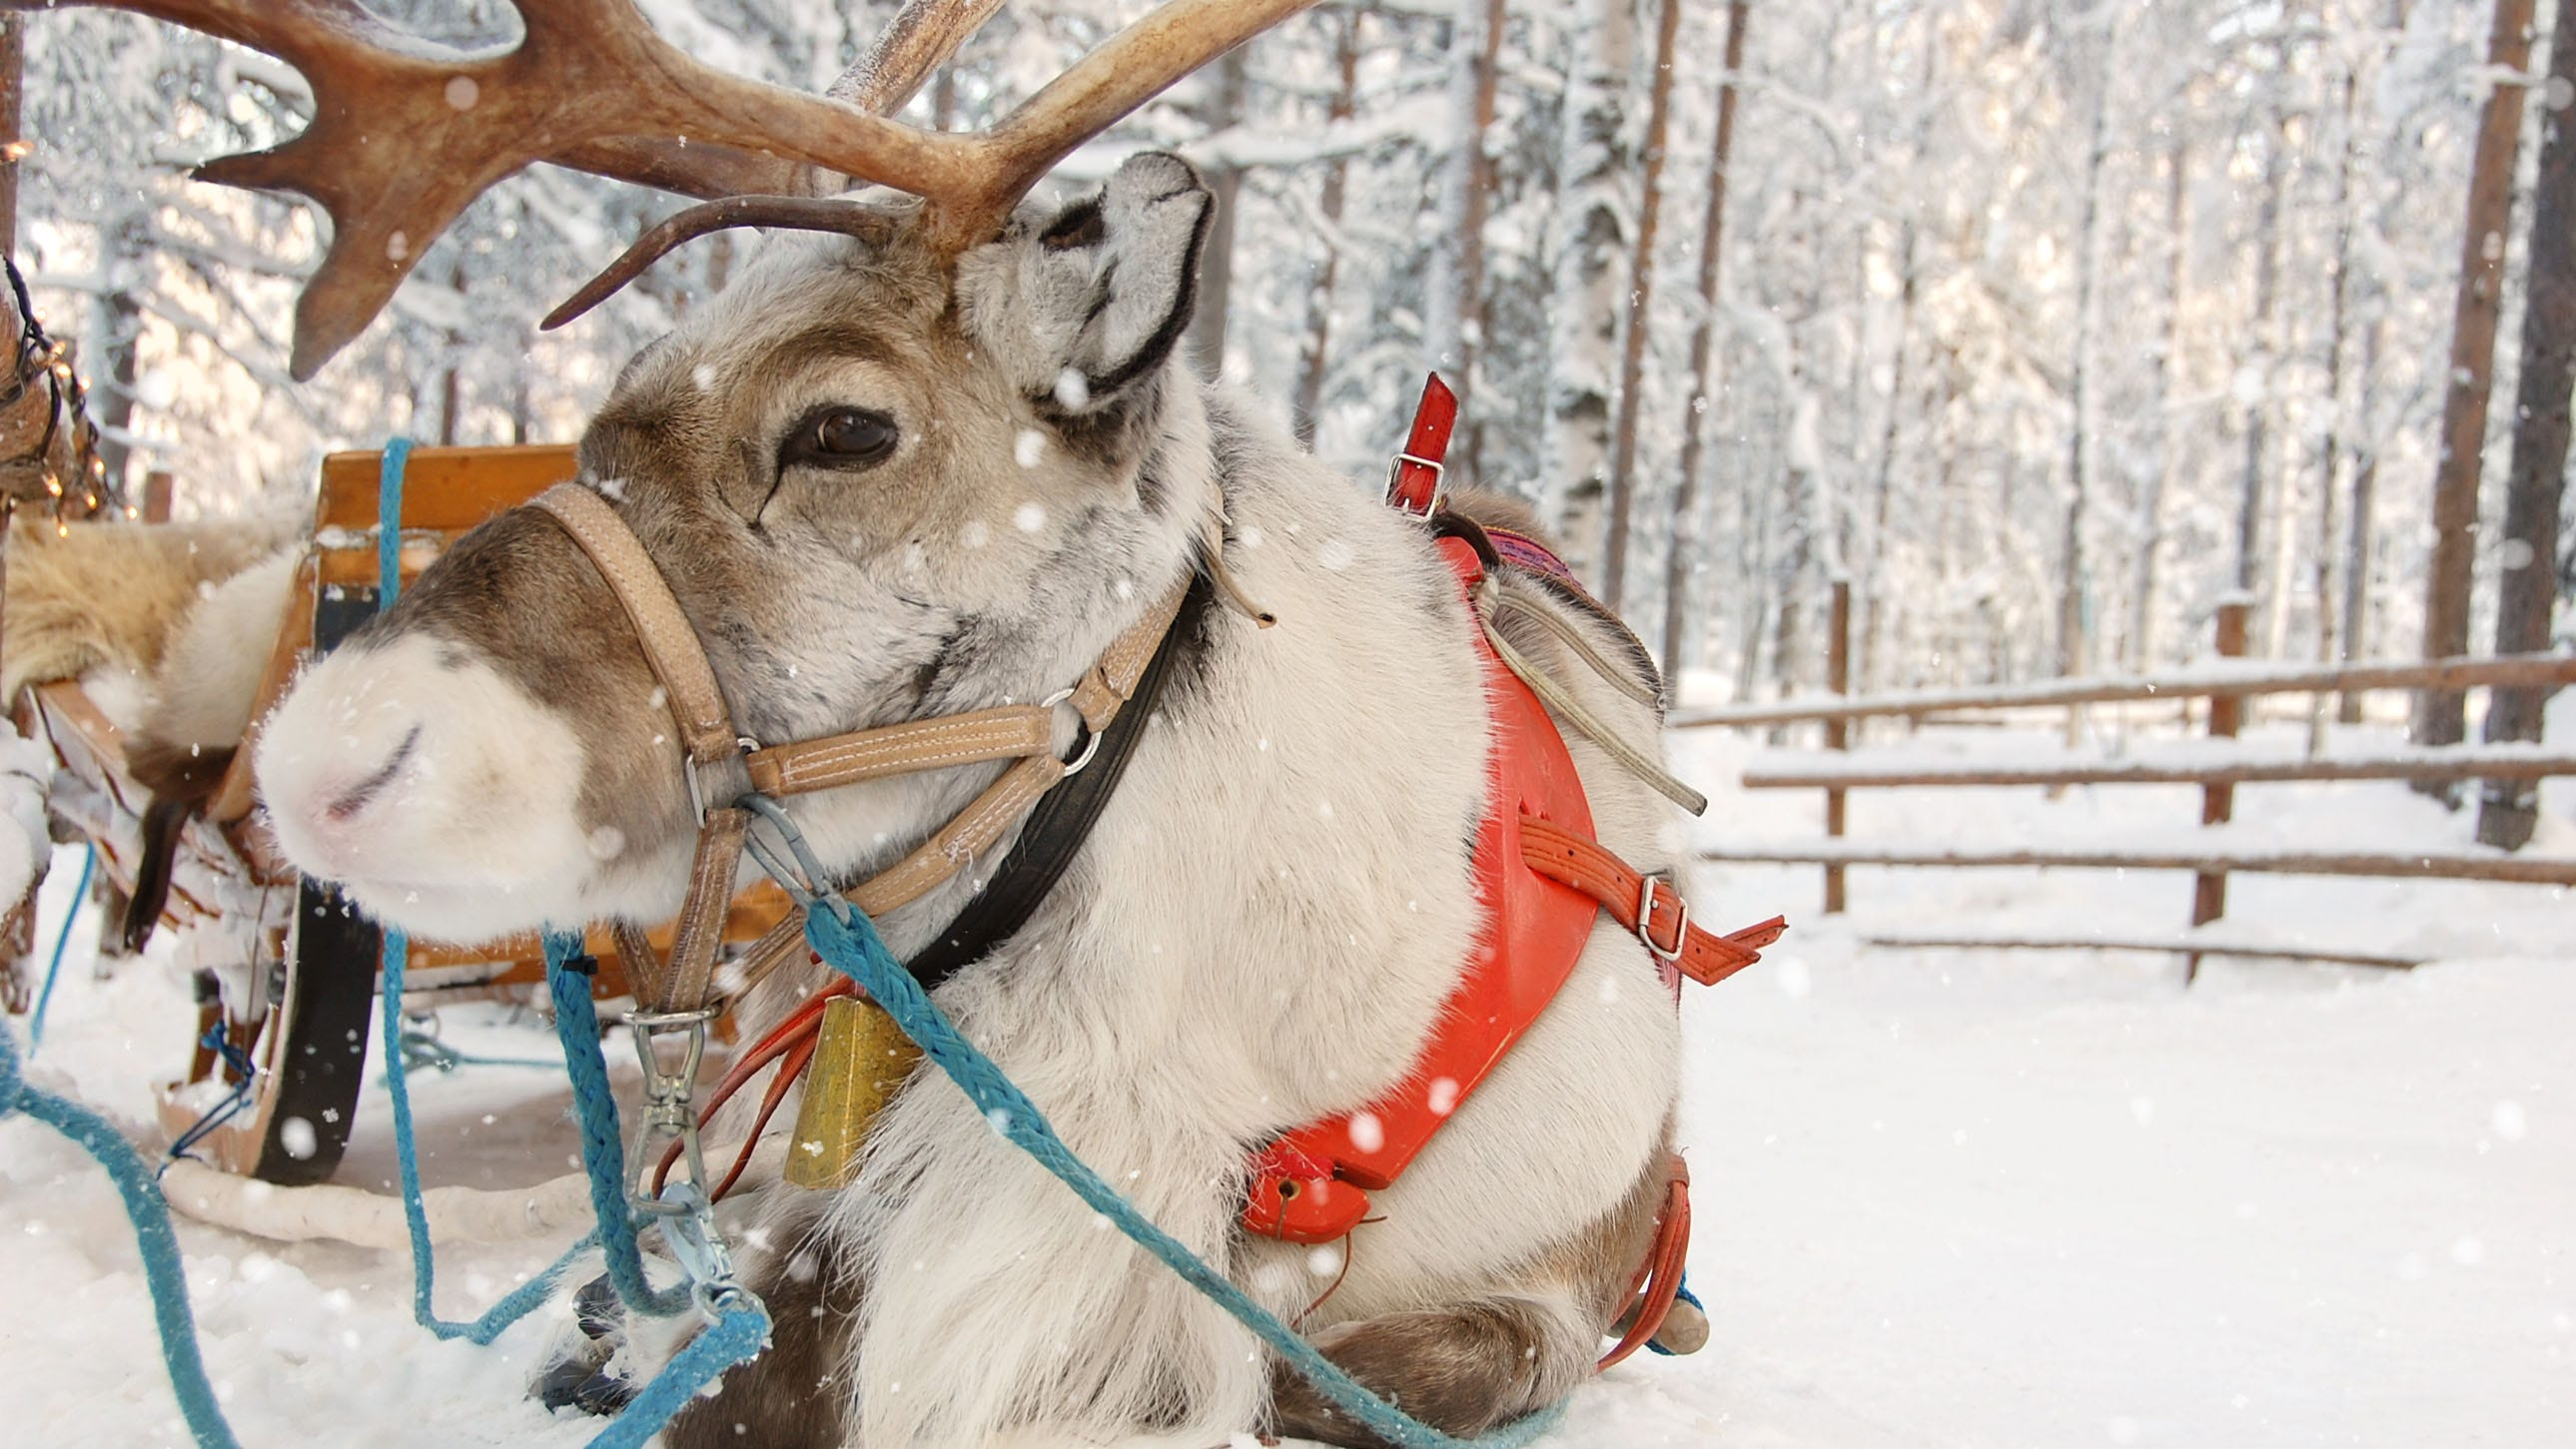 Brewery to deliver beer by reindeer this holiday season